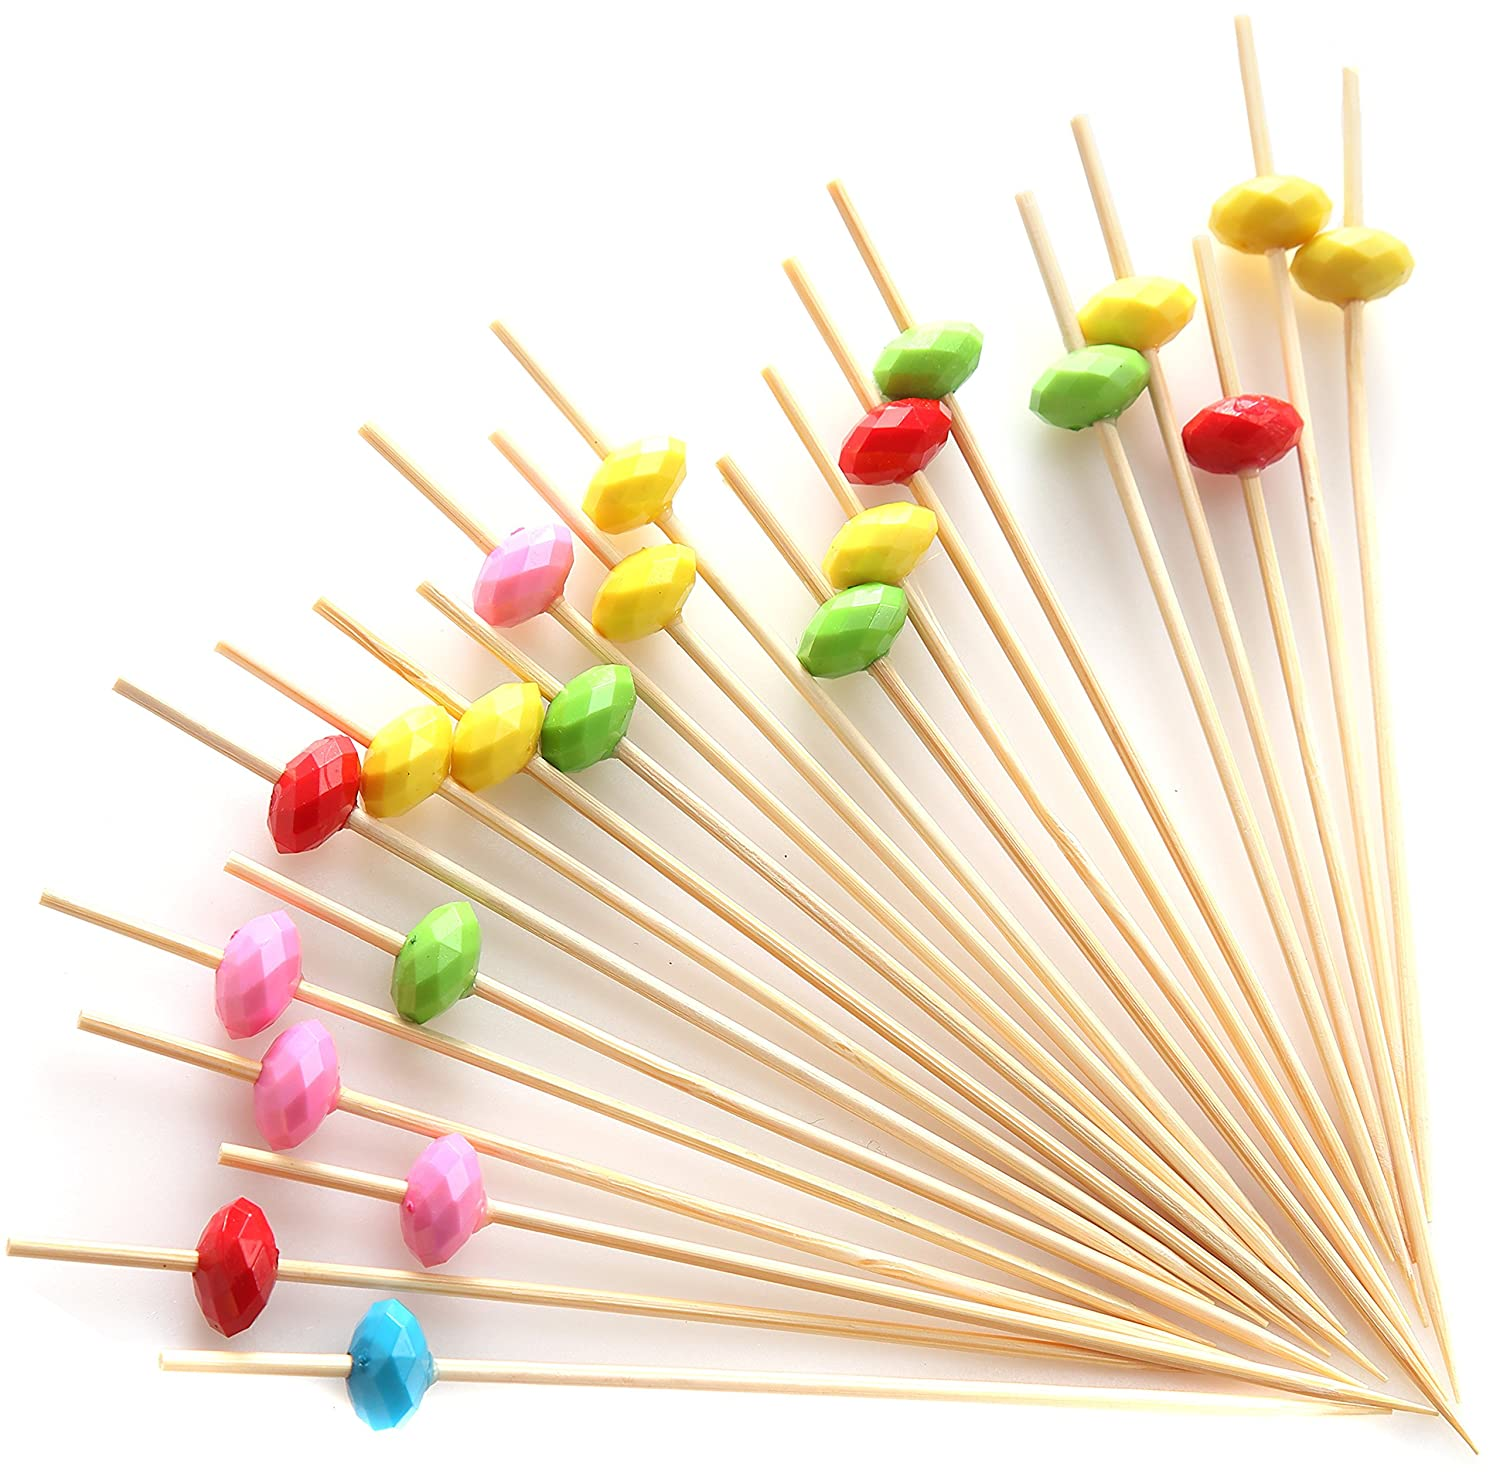 """PuTwo Cocktail Picks Bamboo Handmade Appetizer Toothpicks Sticks 4.7"""" 100ct Heart Candy in Assorted Color"""